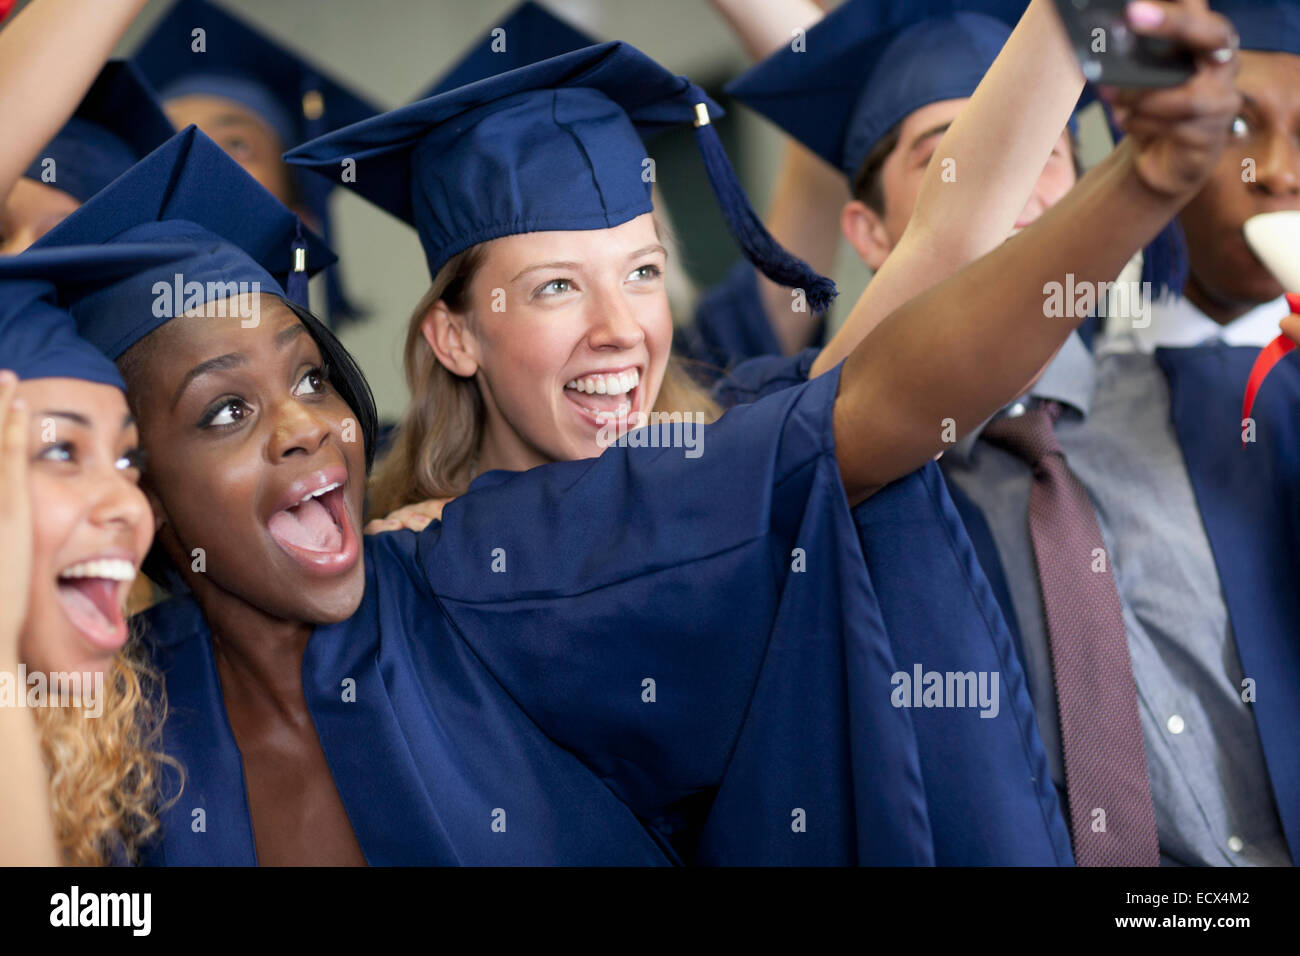 university students taking selfie after graduating stock photo stock photo university students taking selfie after graduating